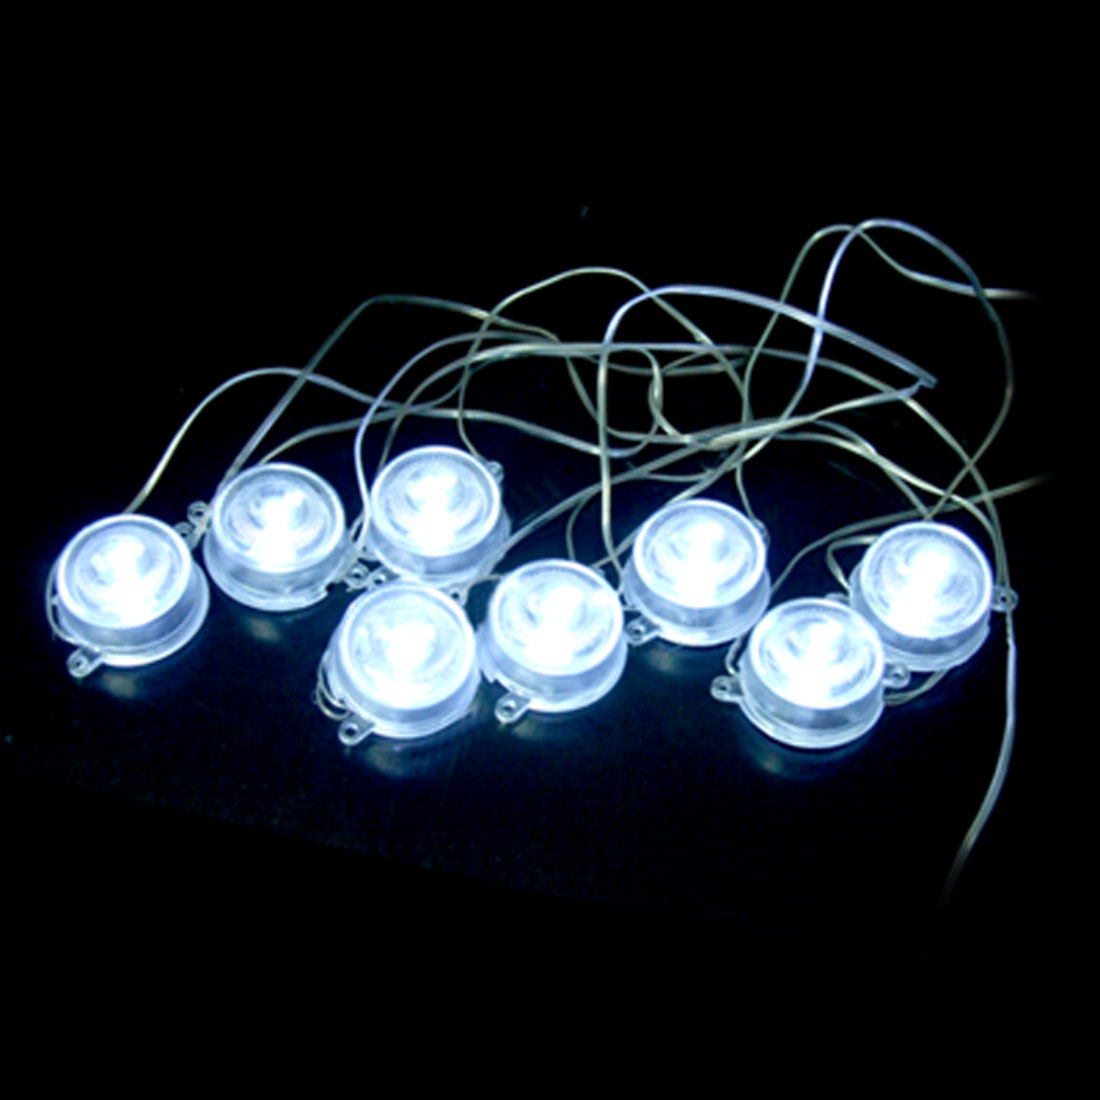 DC 12V Auto Car Water Resistant White LED Undercar Light Lamps 8 Pcs